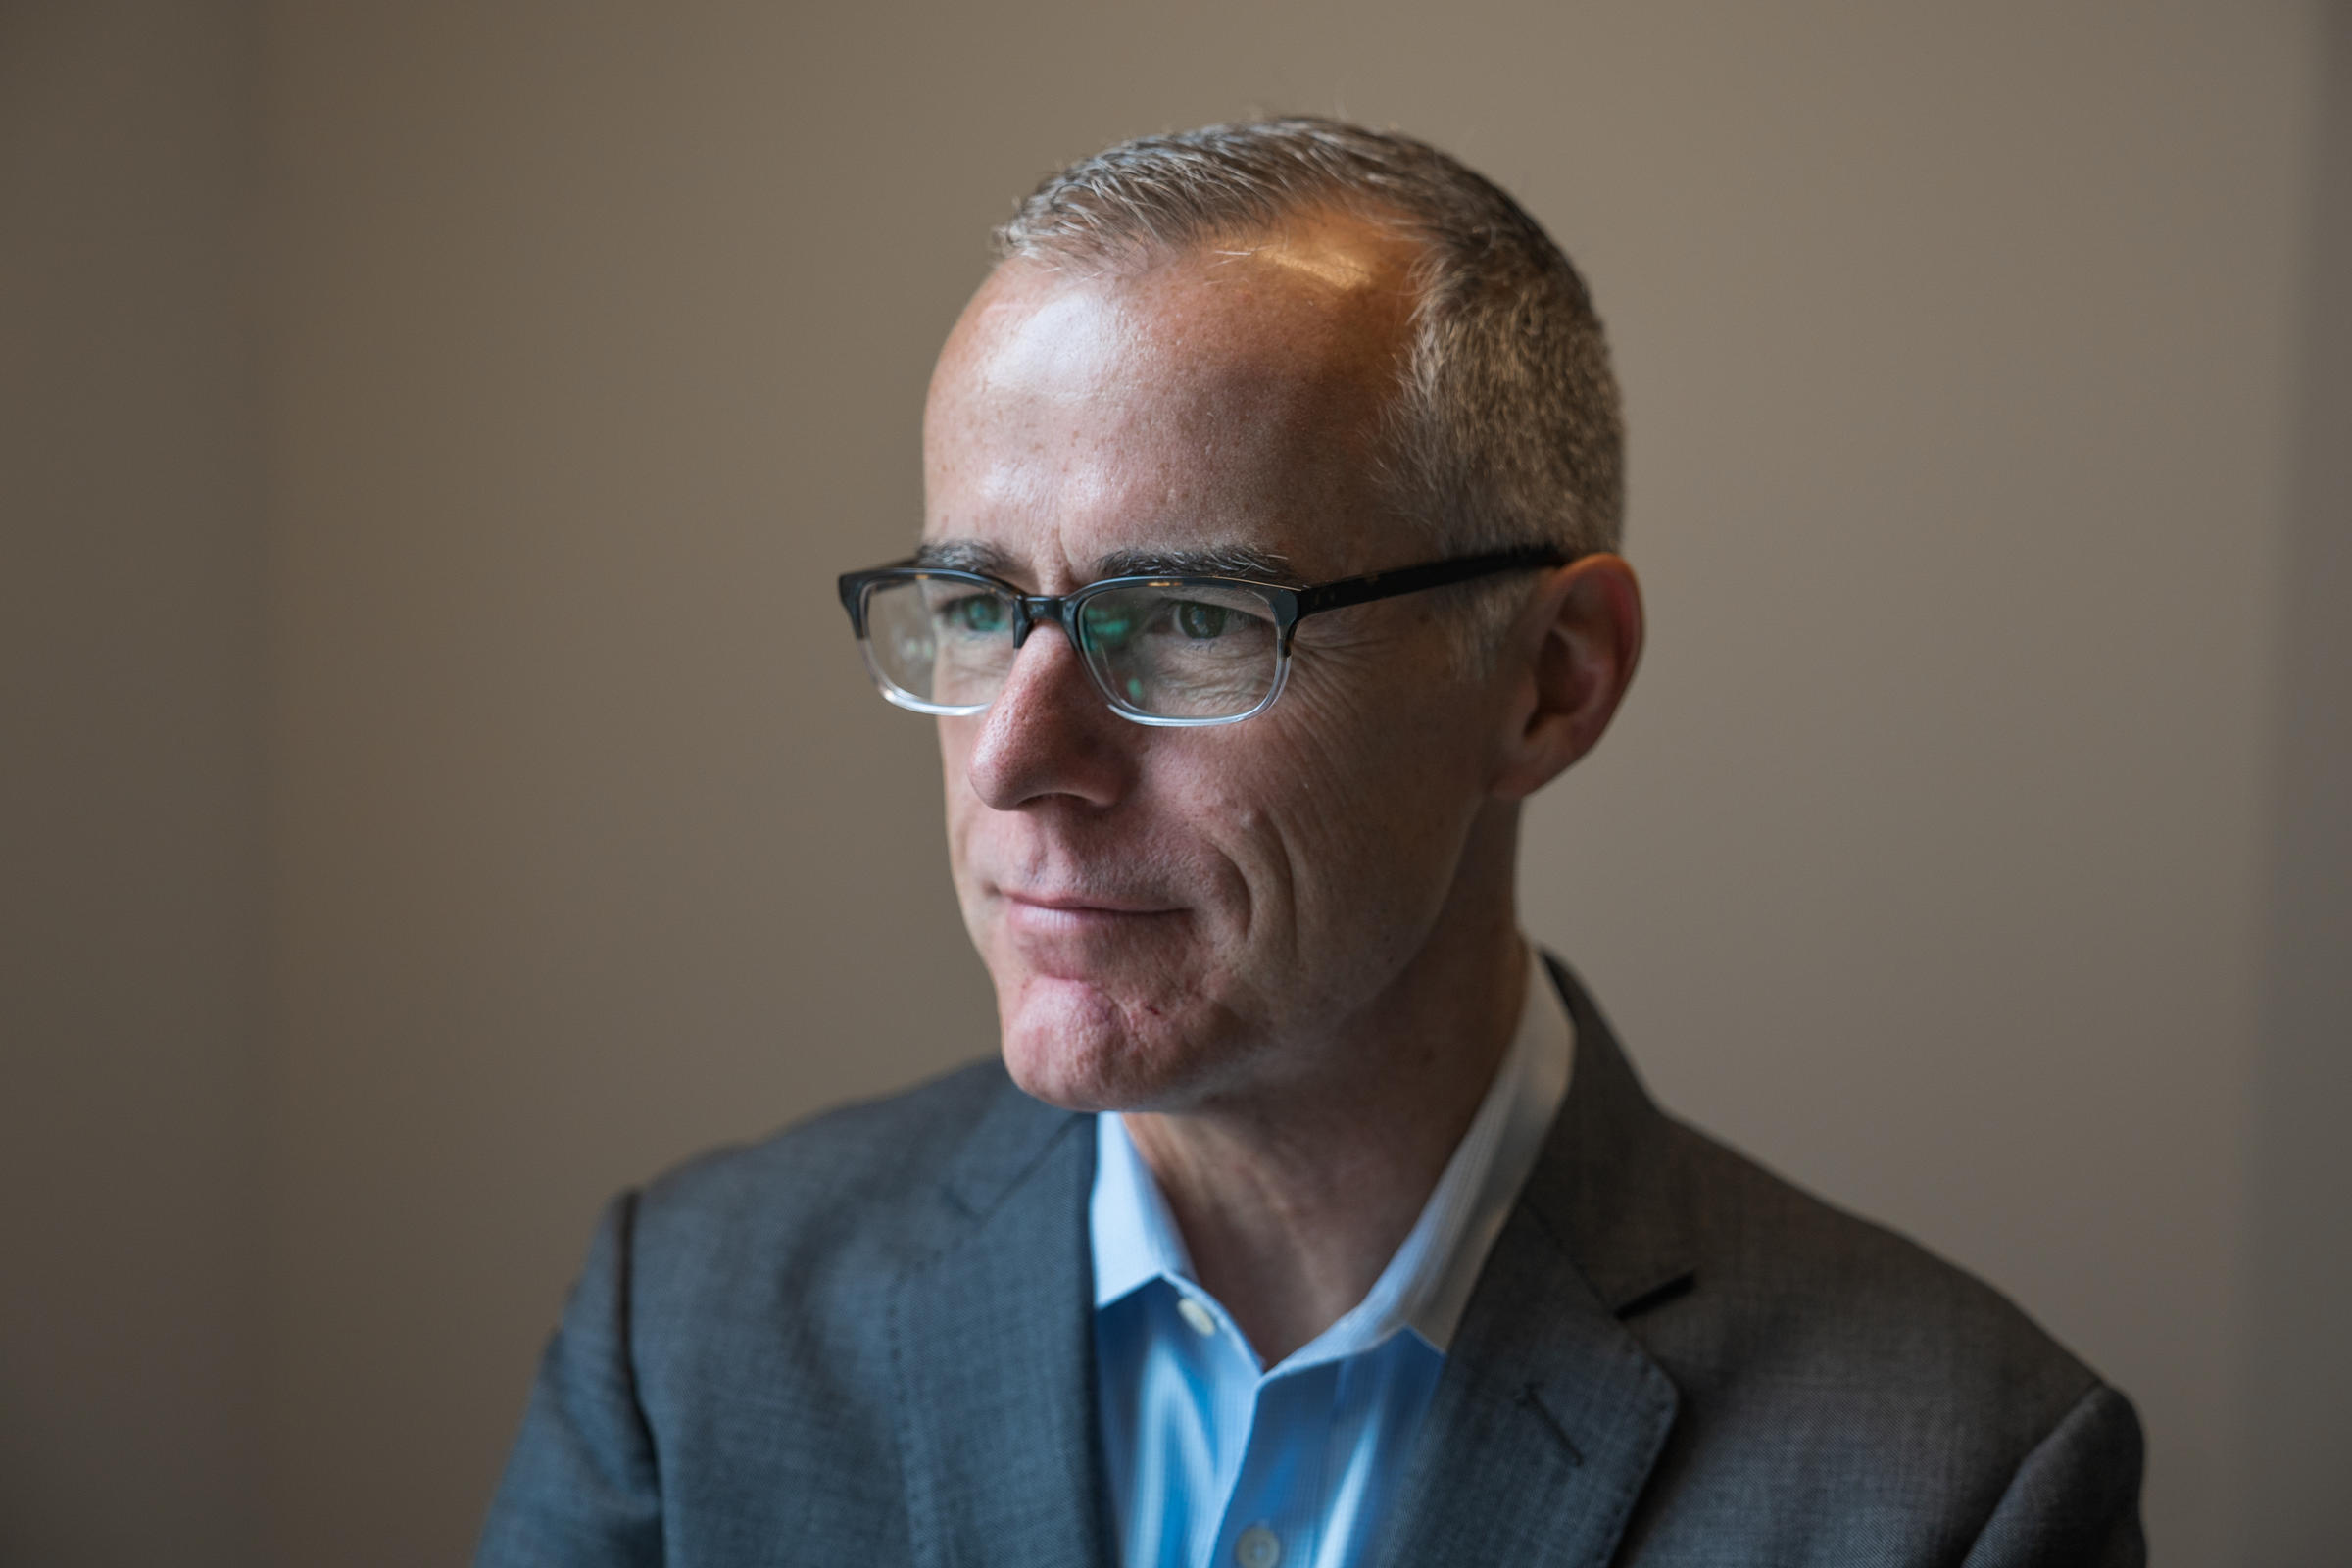 Andrew McCabe, Ex-FBI Deputy, Describes 'Remarkable' Number Of Trump-Russia Contacts